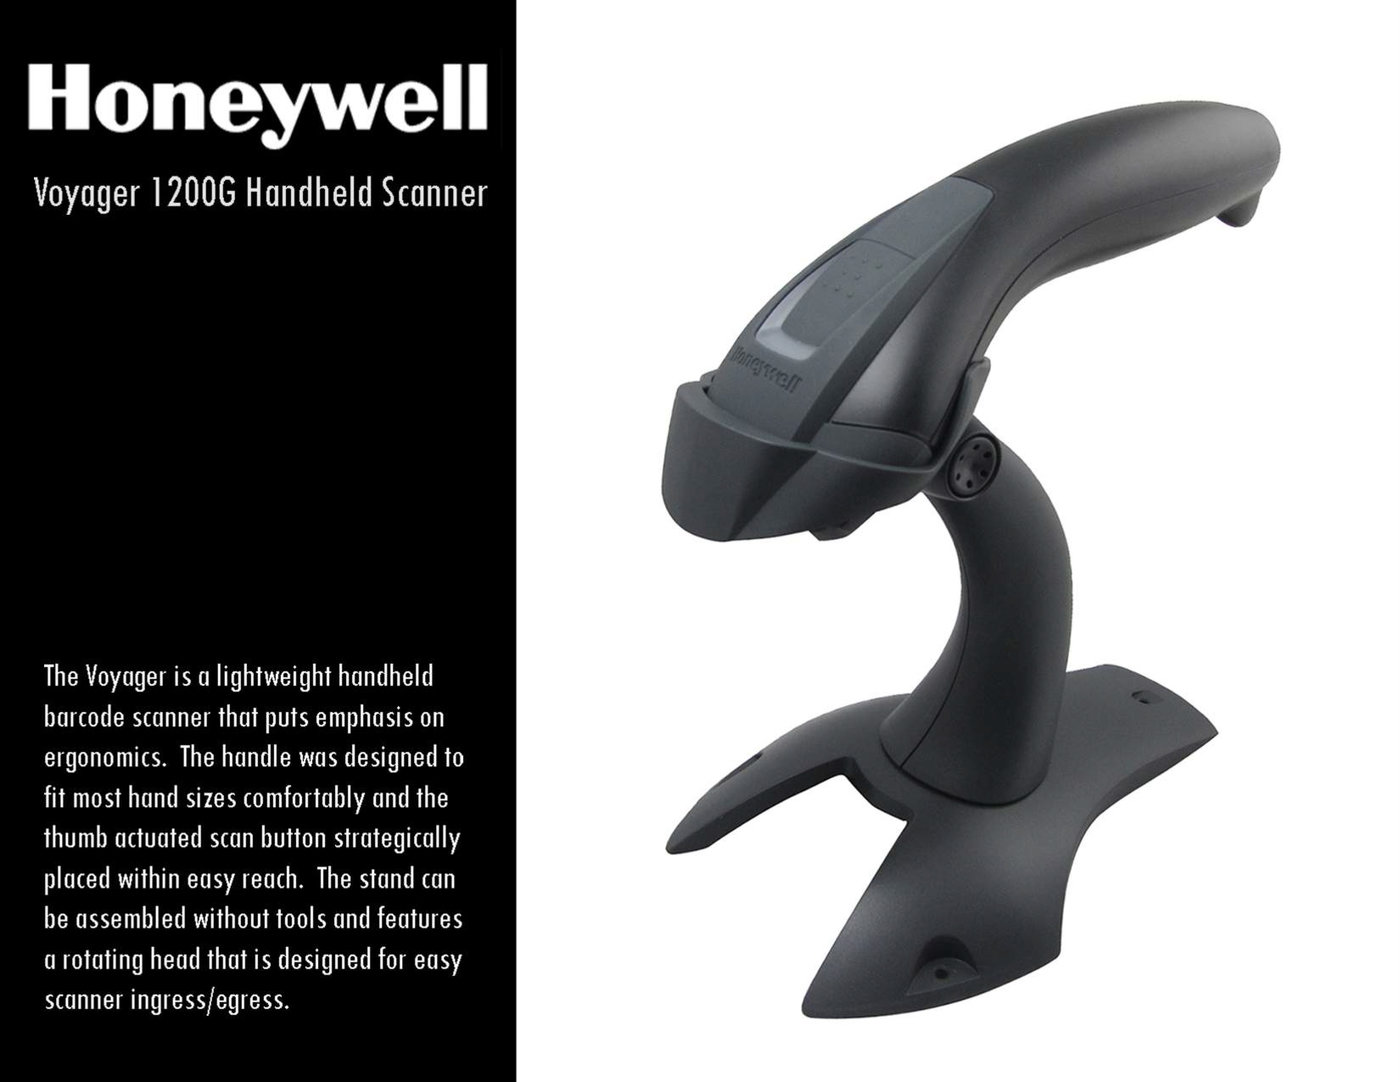 Honeywell Voyager Handheld Scanner by James Byun at Coroflot com